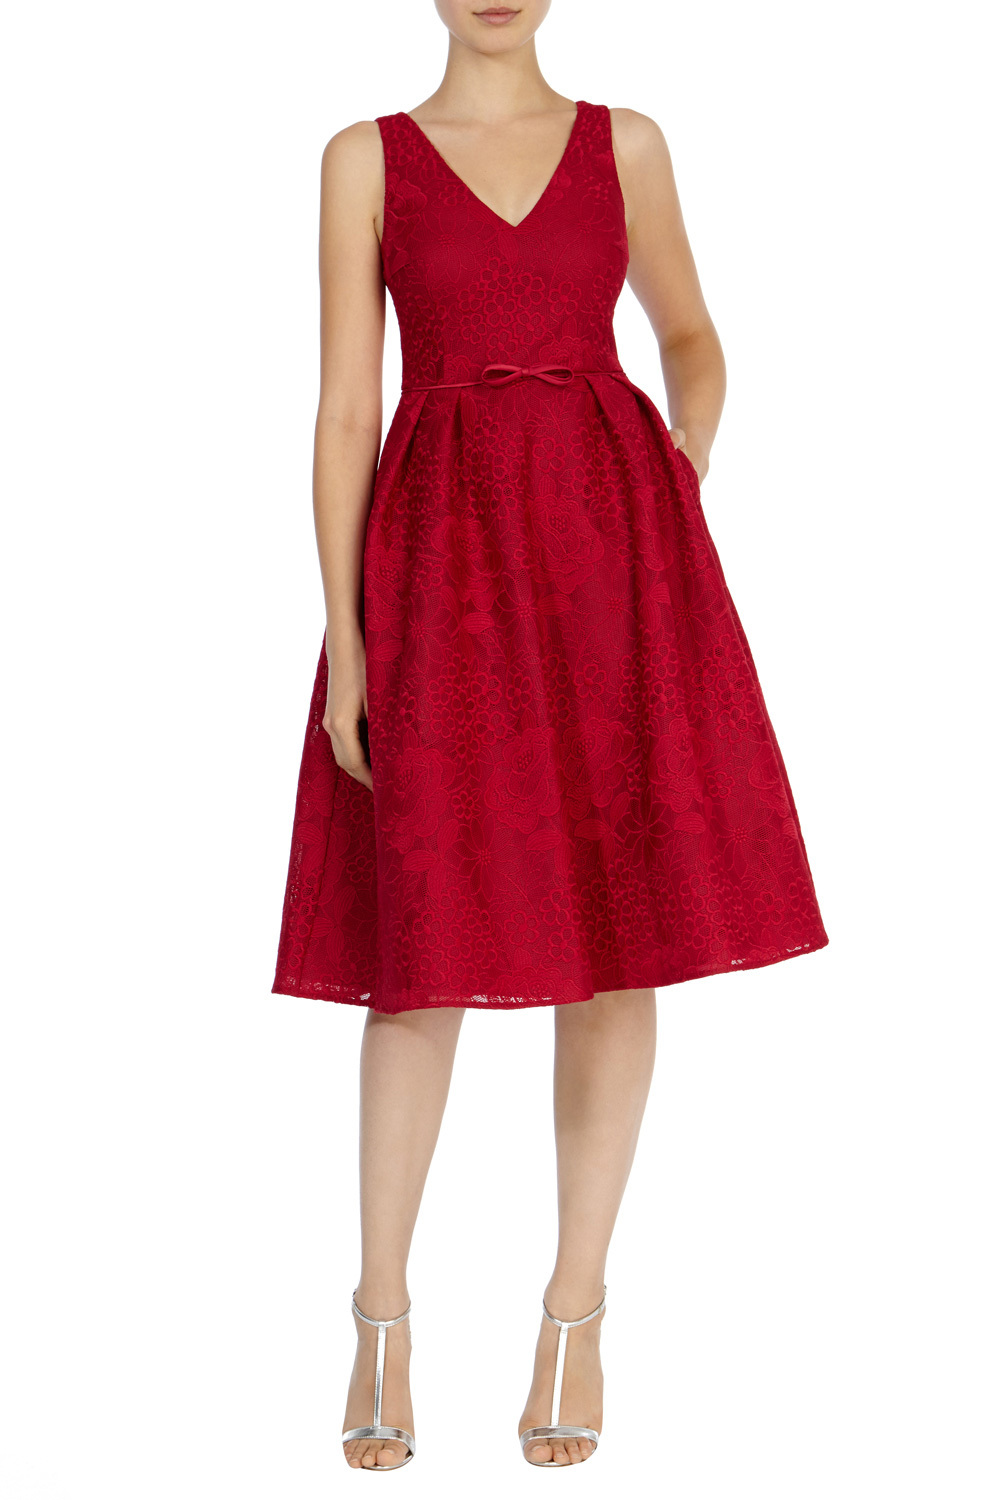 Francella Embroidered Dress - length: below the knee; neckline: v-neck; pattern: plain; sleeve style: sleeveless; style: prom dress; waist detail: belted waist/tie at waist/drawstring; predominant colour: true red; occasions: evening; fit: fitted at waist & bust; fibres: polyester/polyamide - 100%; sleeve length: sleeveless; texture group: lace; pattern type: fabric; season: s/s 2016; wardrobe: event